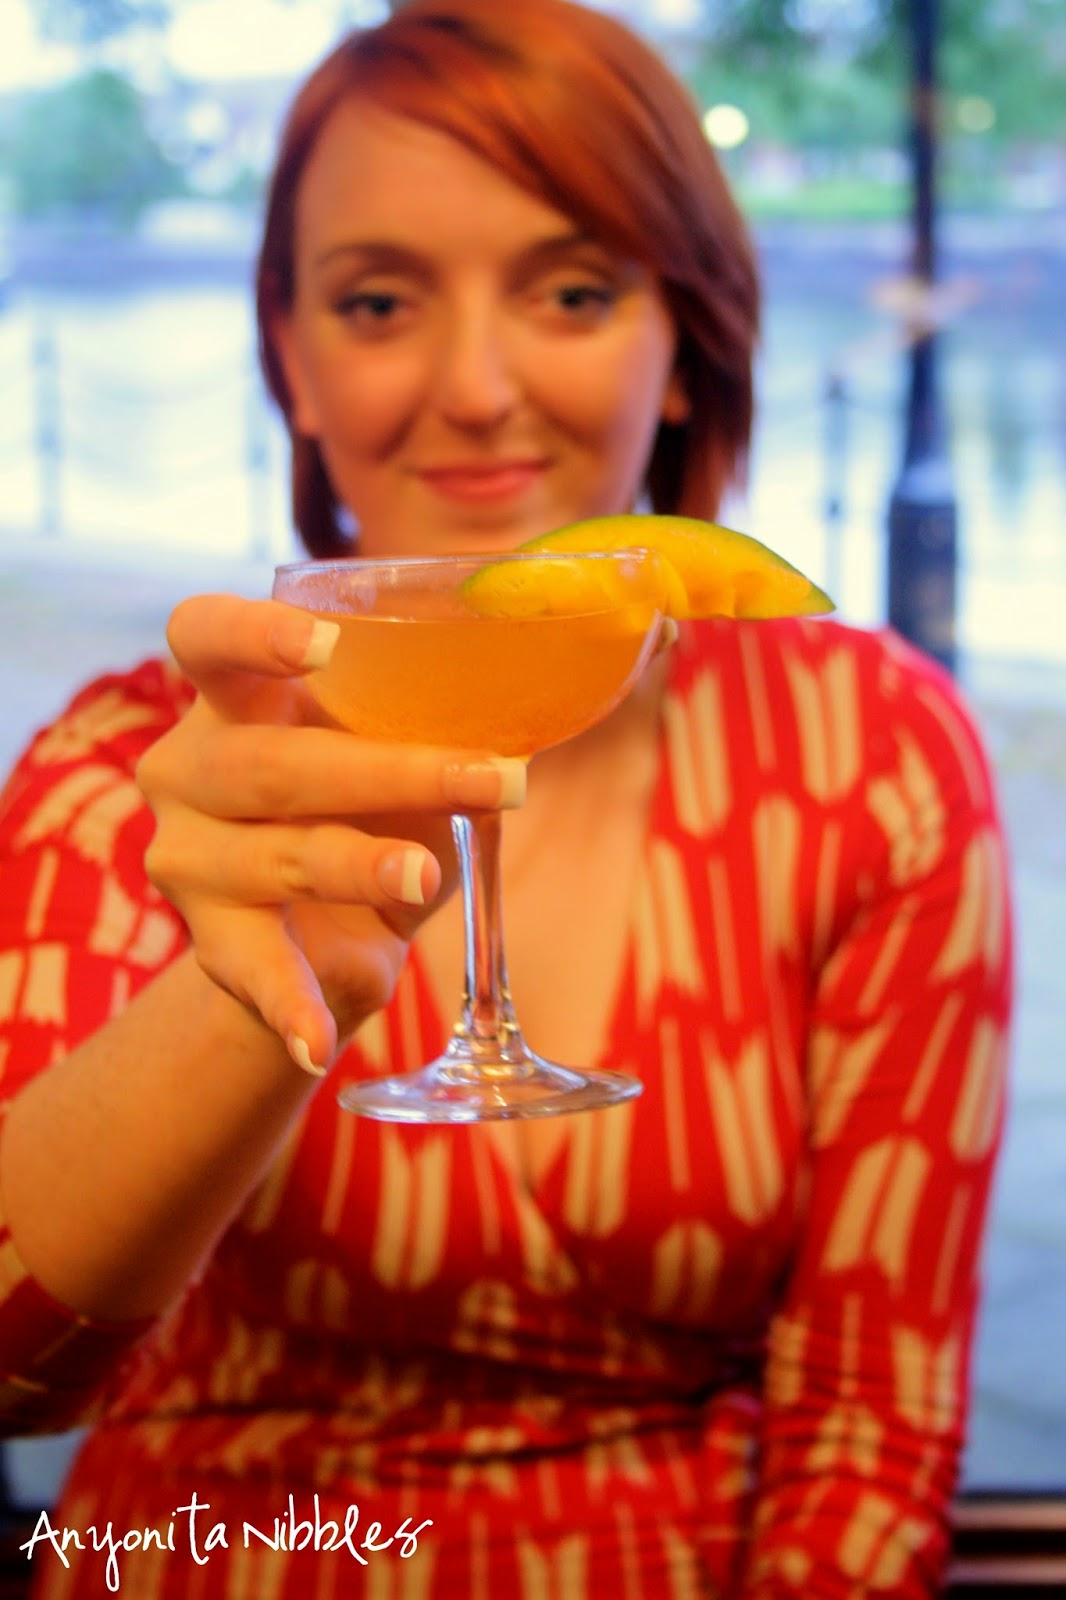 Charlotte from Gin and Ginger can show you how to whip up this tasty Curry Mile cocktail from Anyonita Nibbles